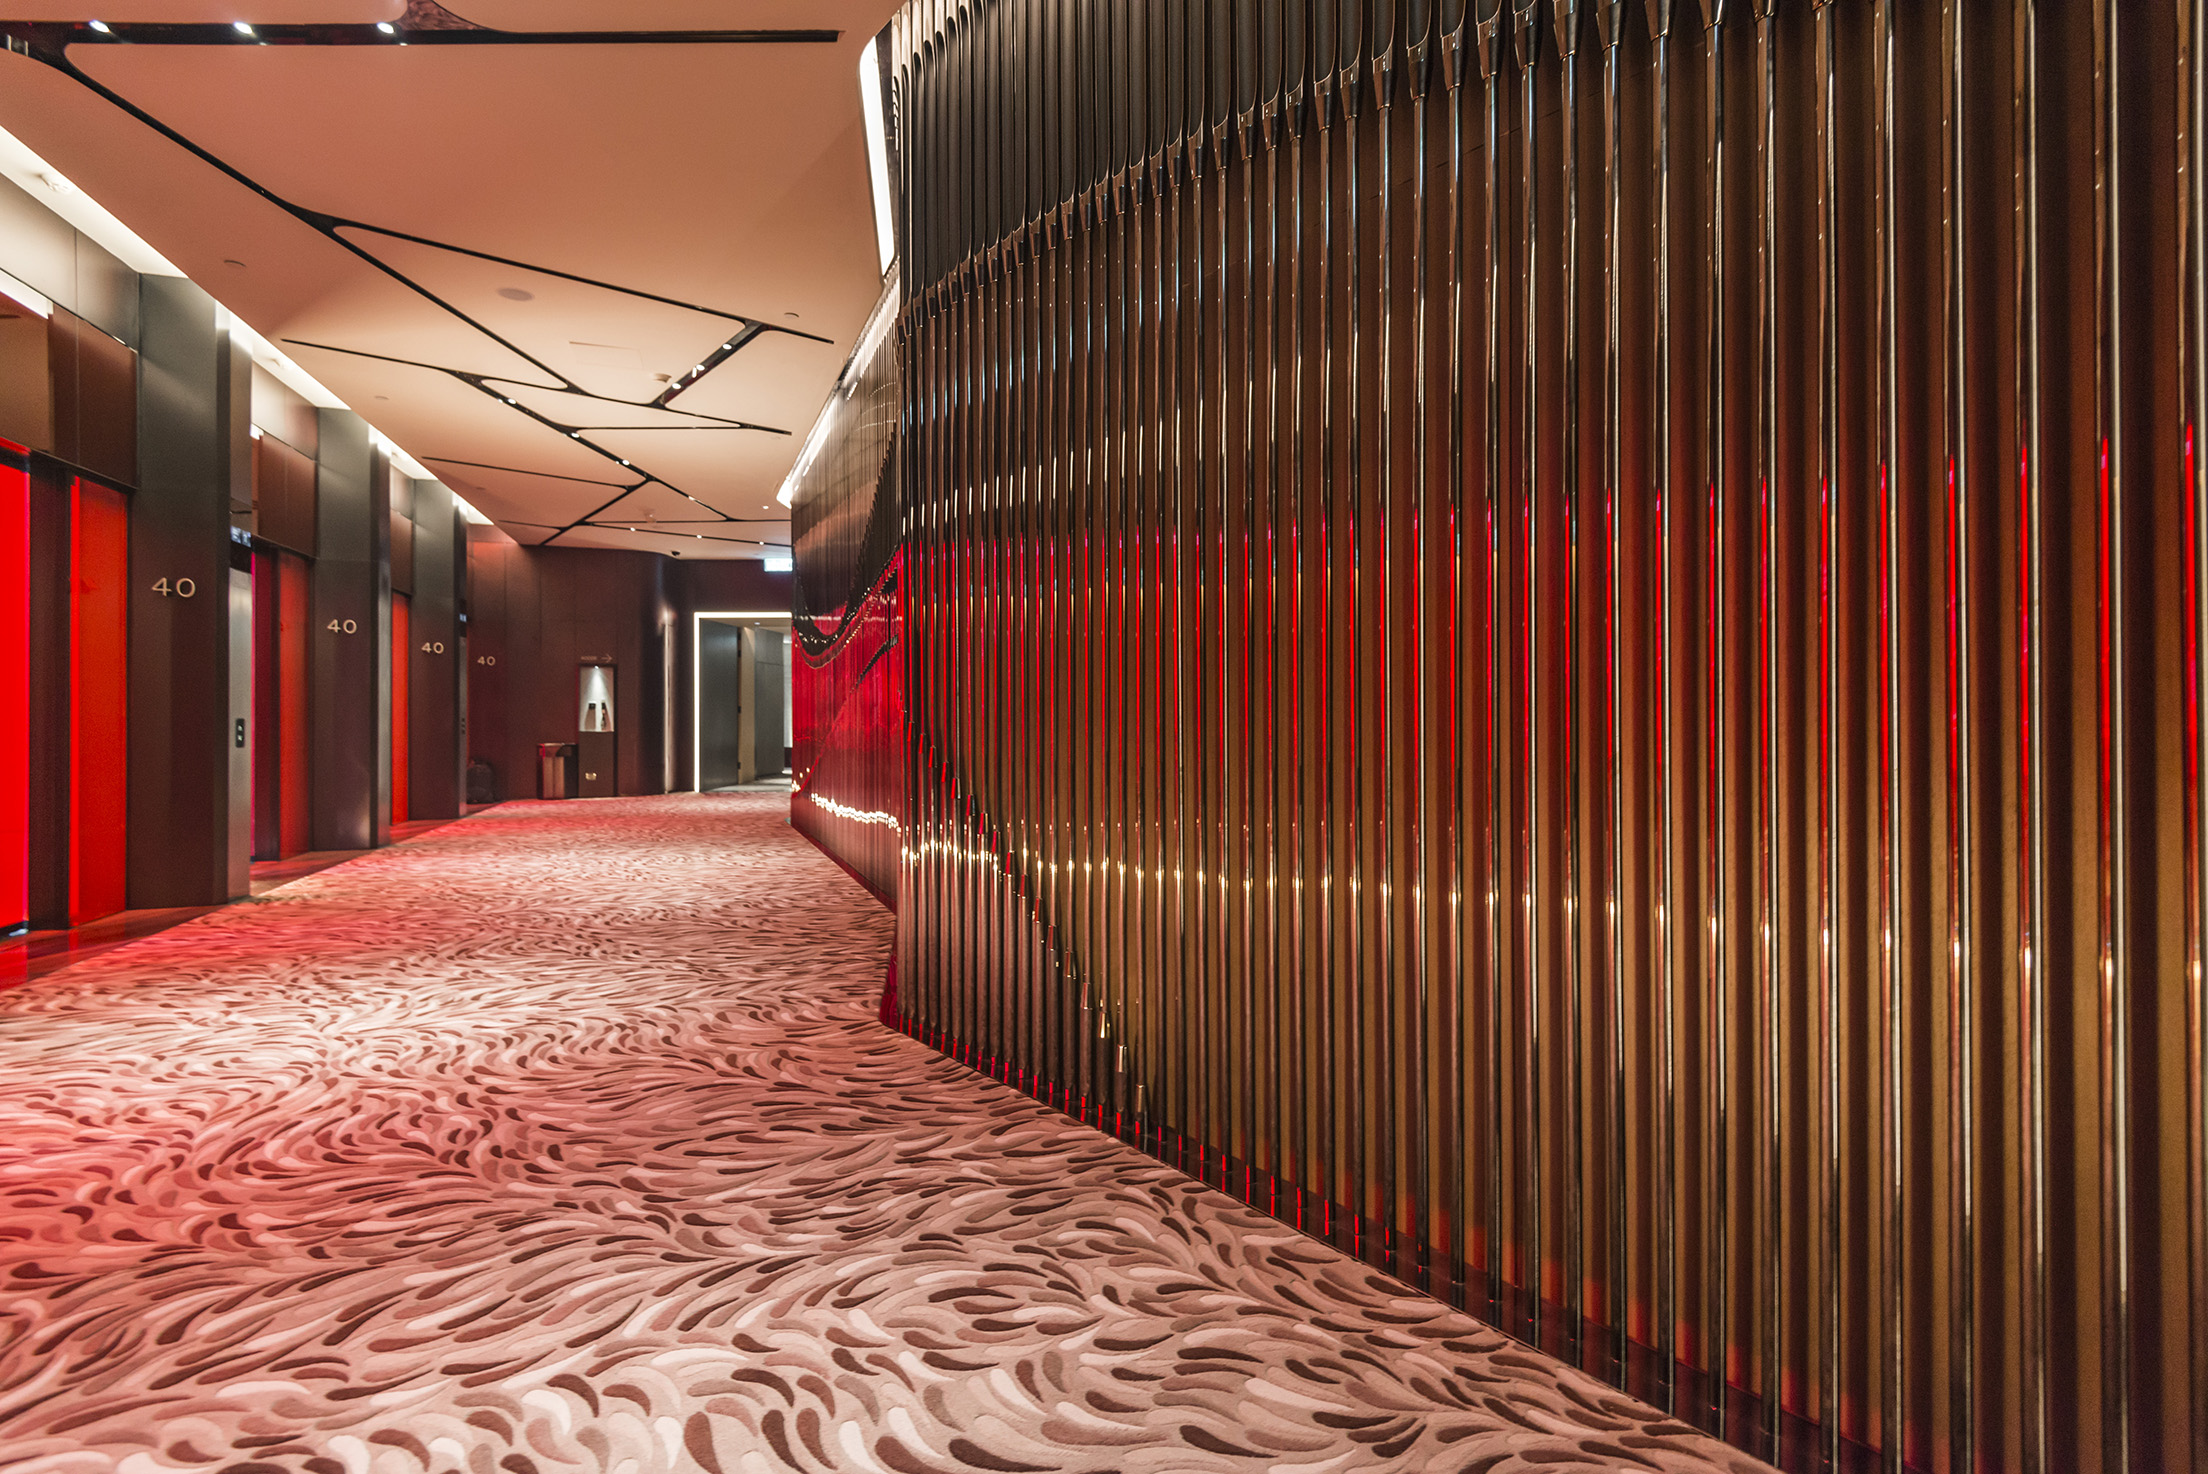 jeb-customprojects-metal-screen-morpheus-hotel-macau-04.jpg